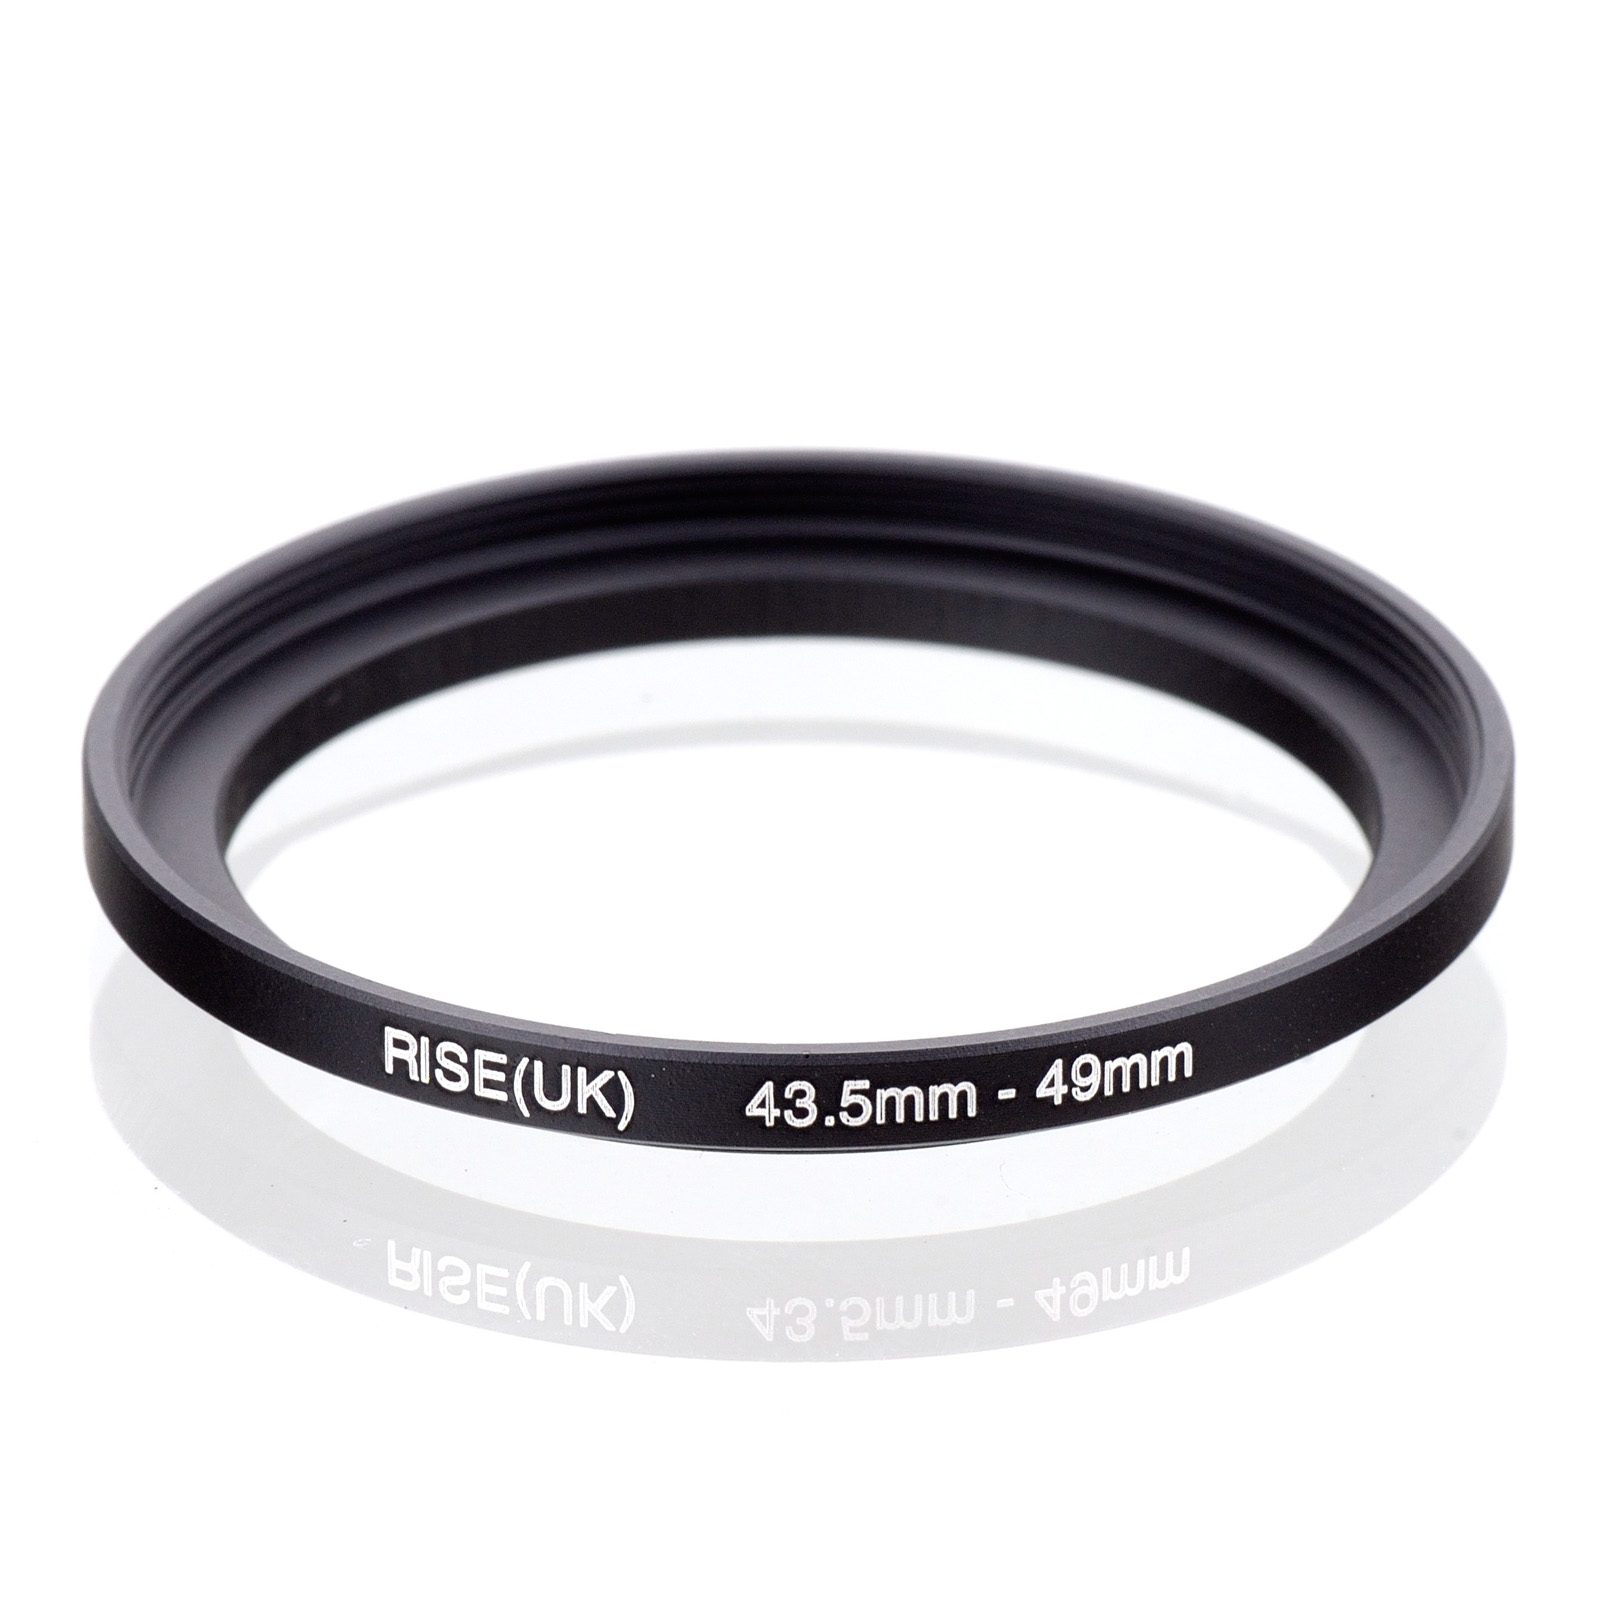 43.5mm-49mm 43.5-49 mm 43.5 to 49 Step UP Filter Ring Adapter free shipping